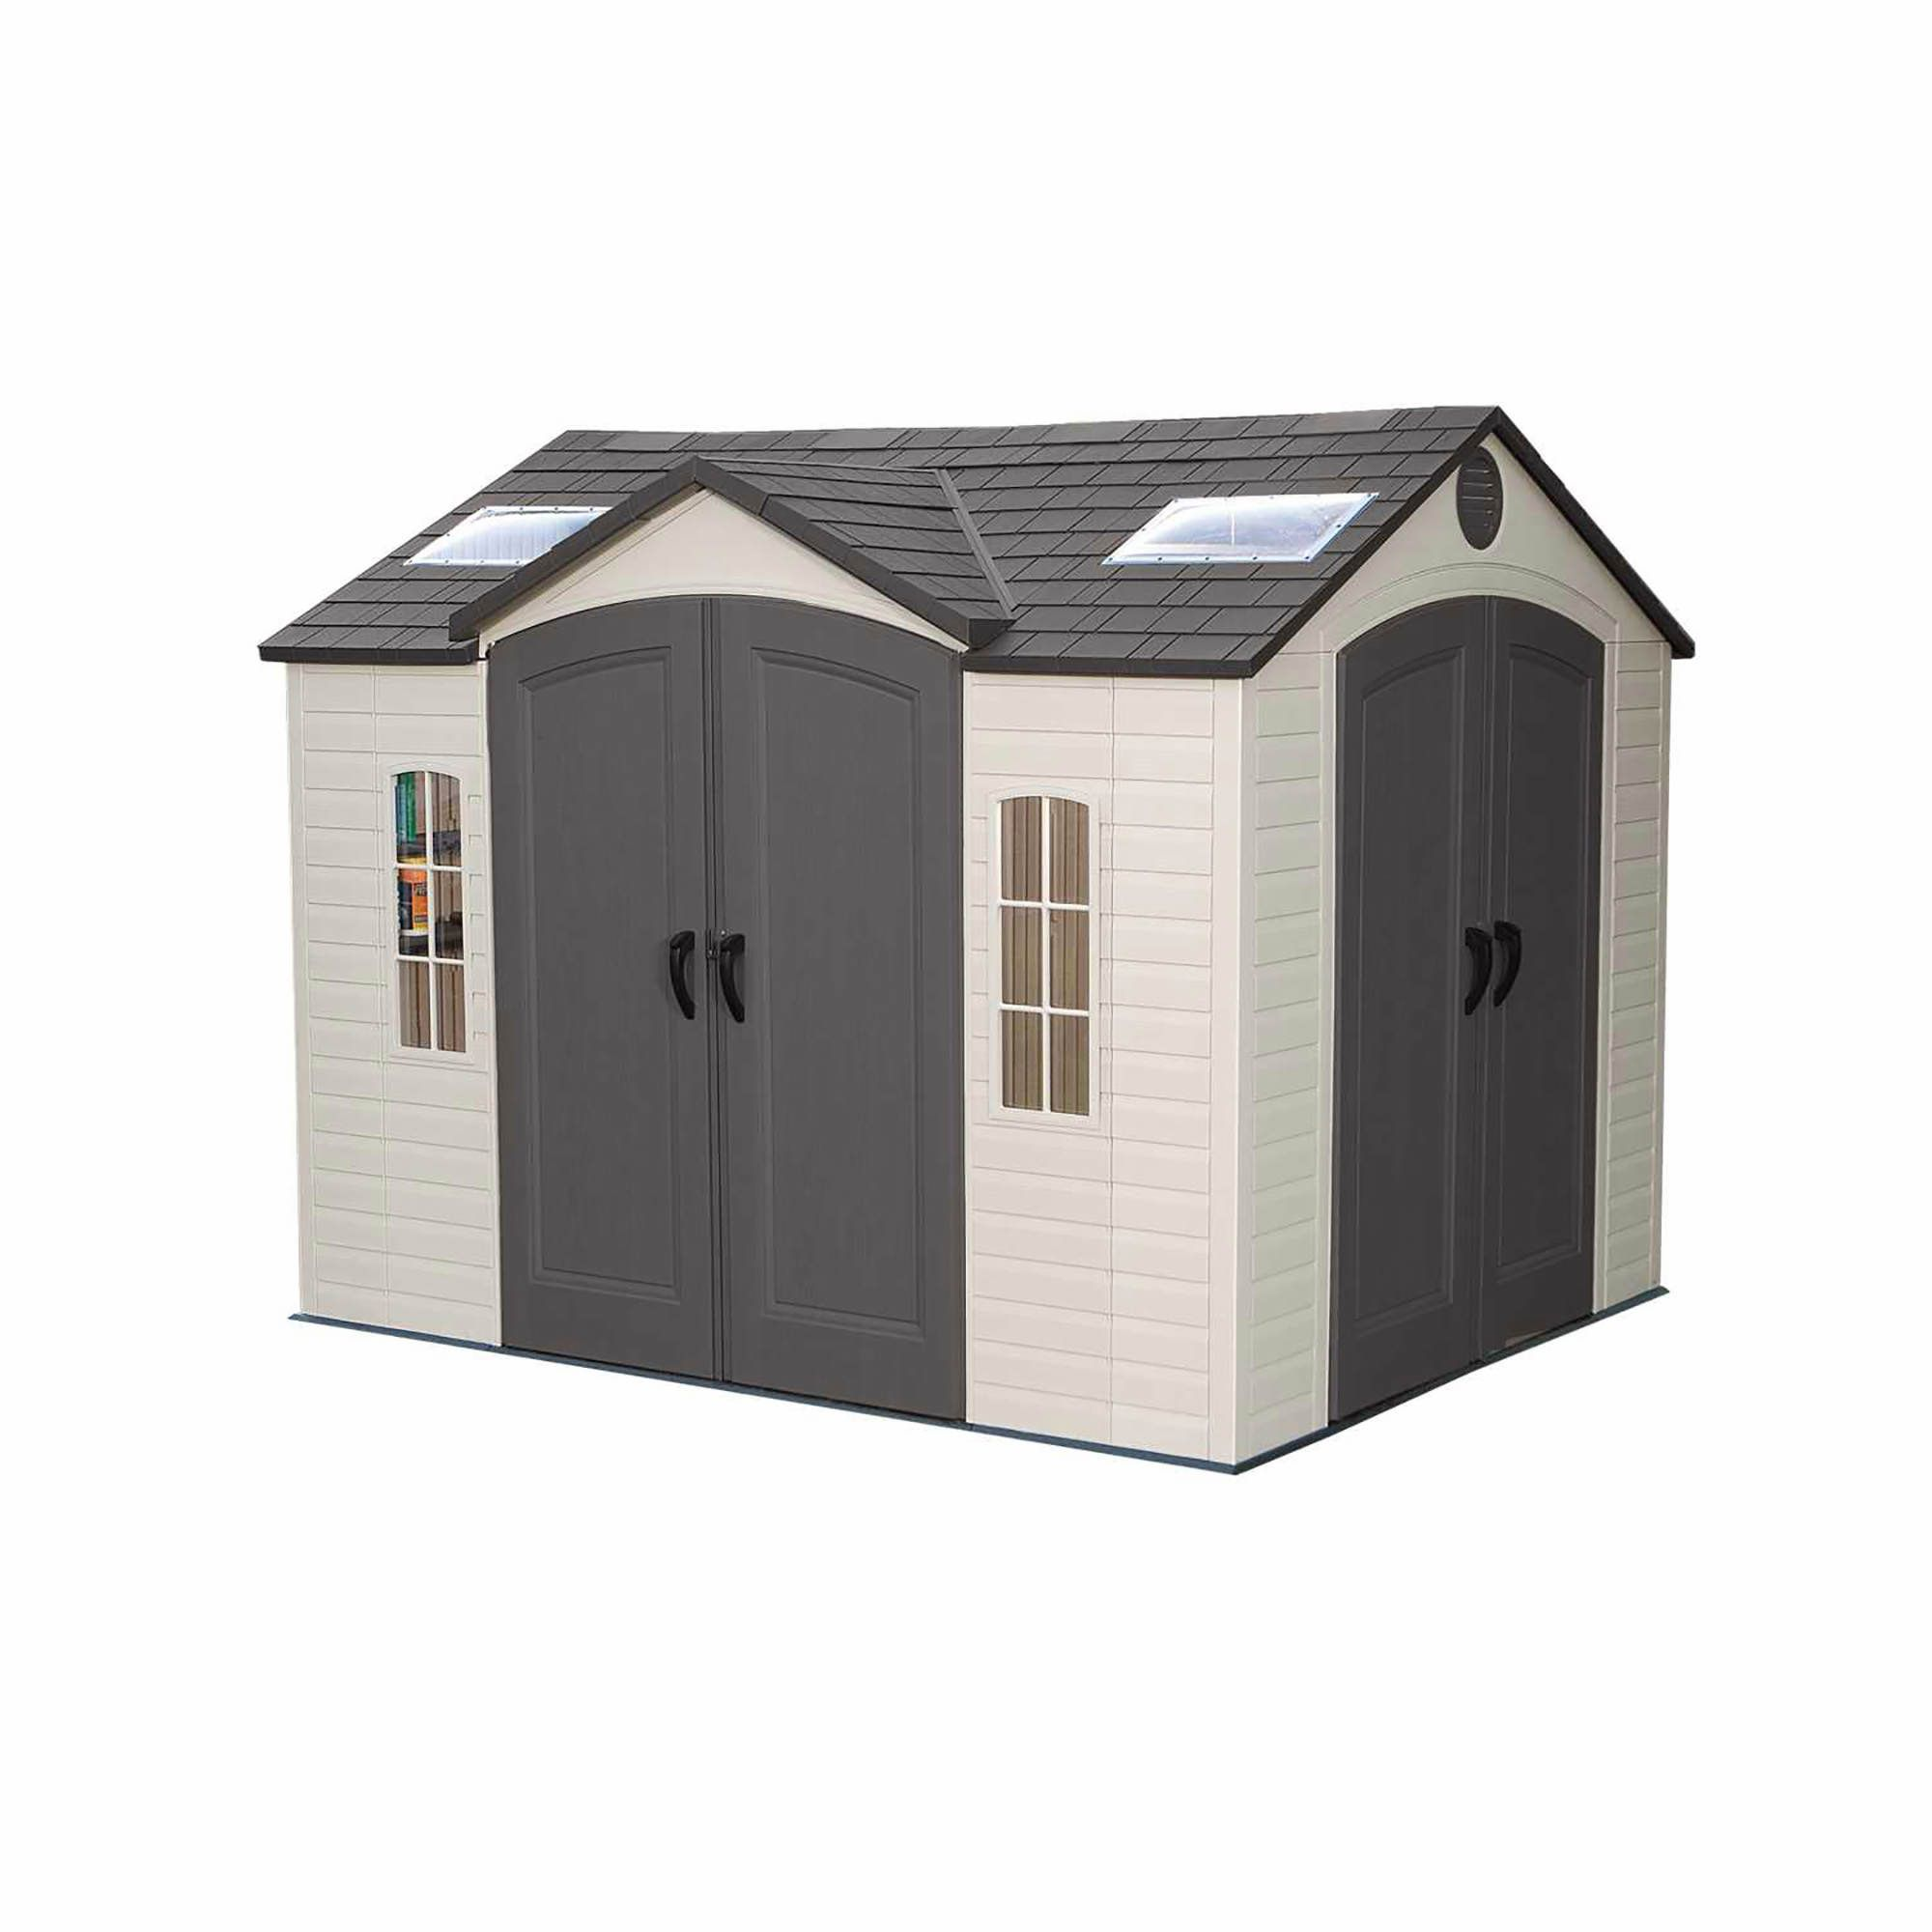 Lifetime 10 X 8 Dual Entry Shed Outdoor Storage Sheds Shed Storage Plastic Sheds